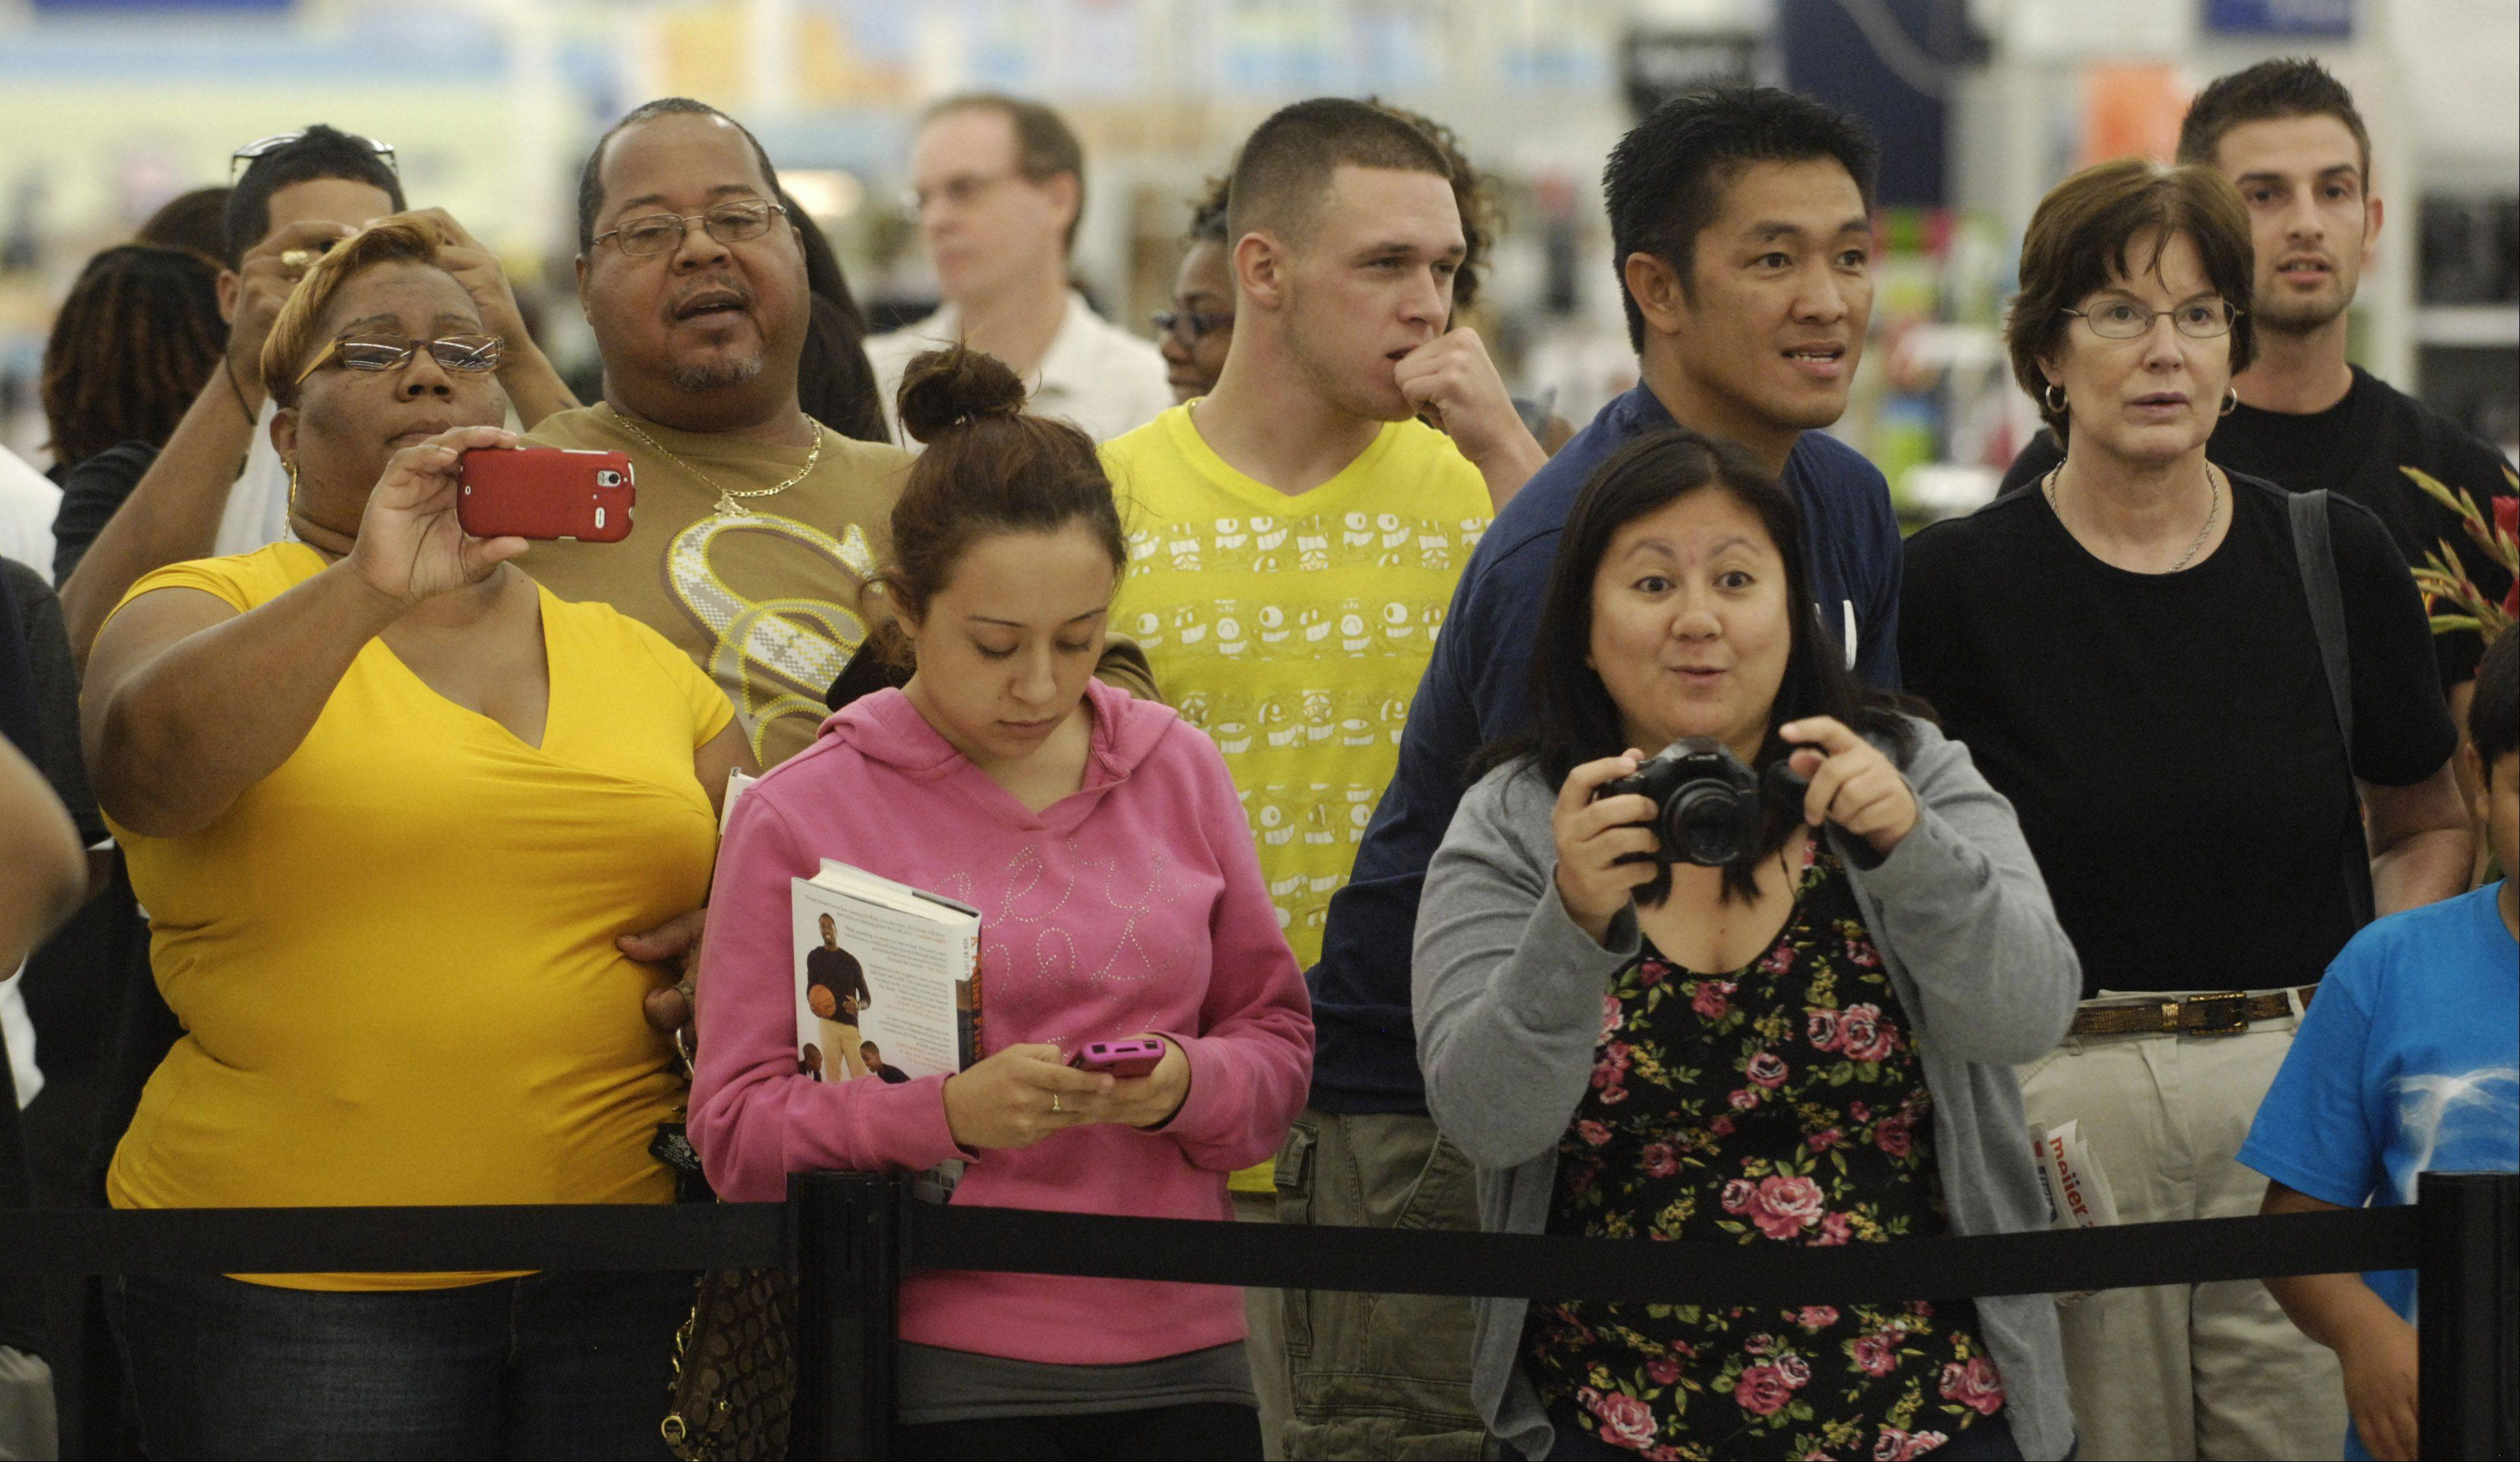 JOE LEWNARD/jlewnard@dailyherald.comFans take photos of Miami Heat star Dwyane Wade at the Rolling Meadows Meijer store Wednesday.